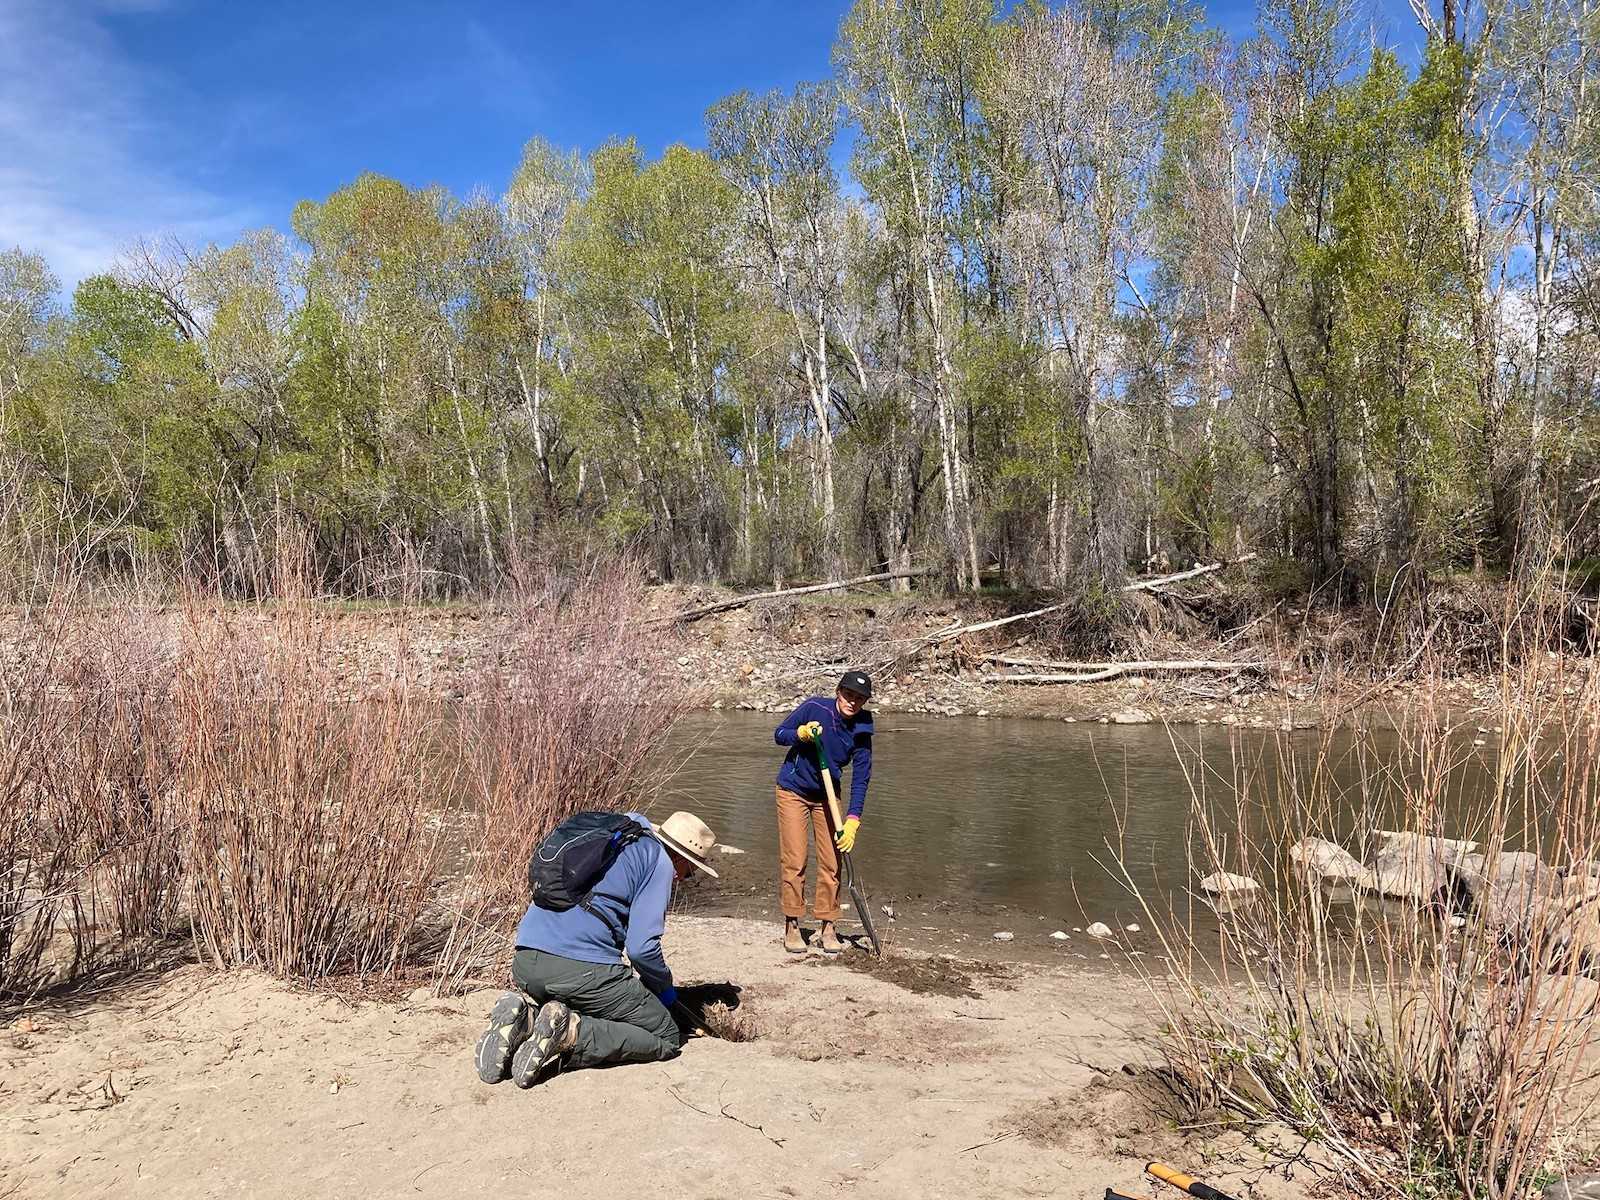 Image of volunteers at the Paonia River Park in Colorado